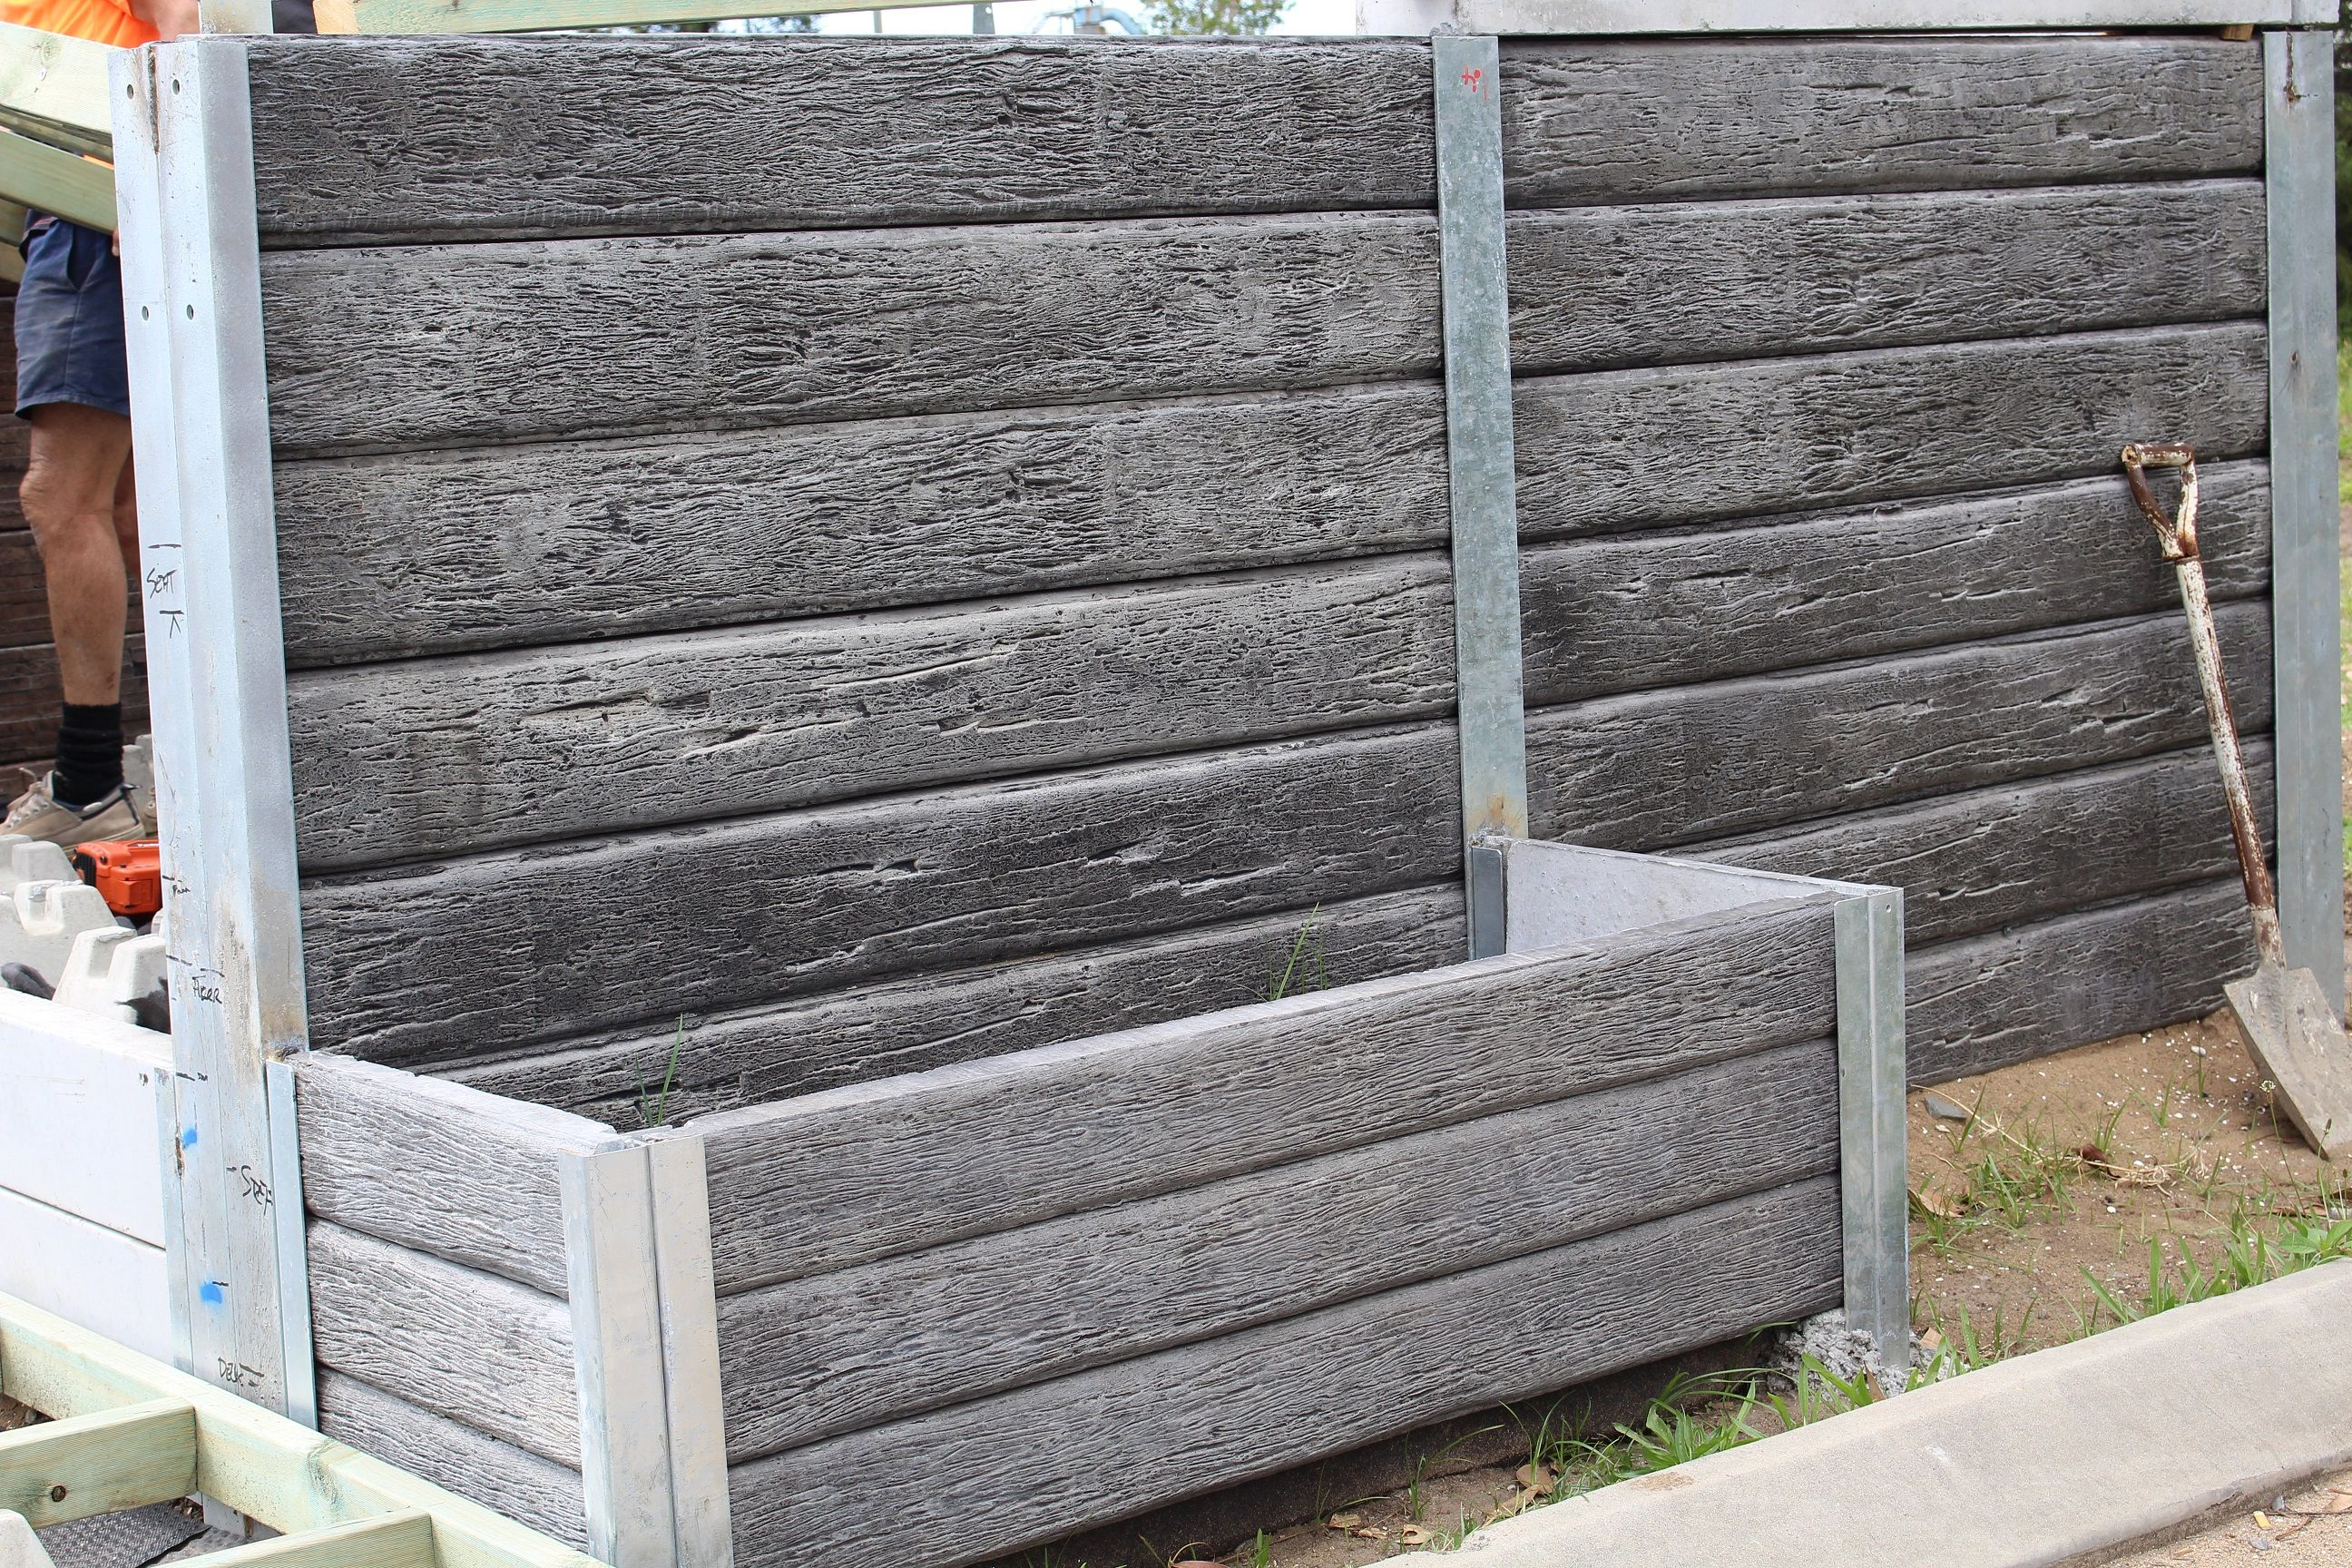 Pioneer Gumtree Concrete Sleepers Used As A Planter Box For More Information Visit Concrete Sleeper Retaining Walls Retaining Wall Design Backyard Landscaping